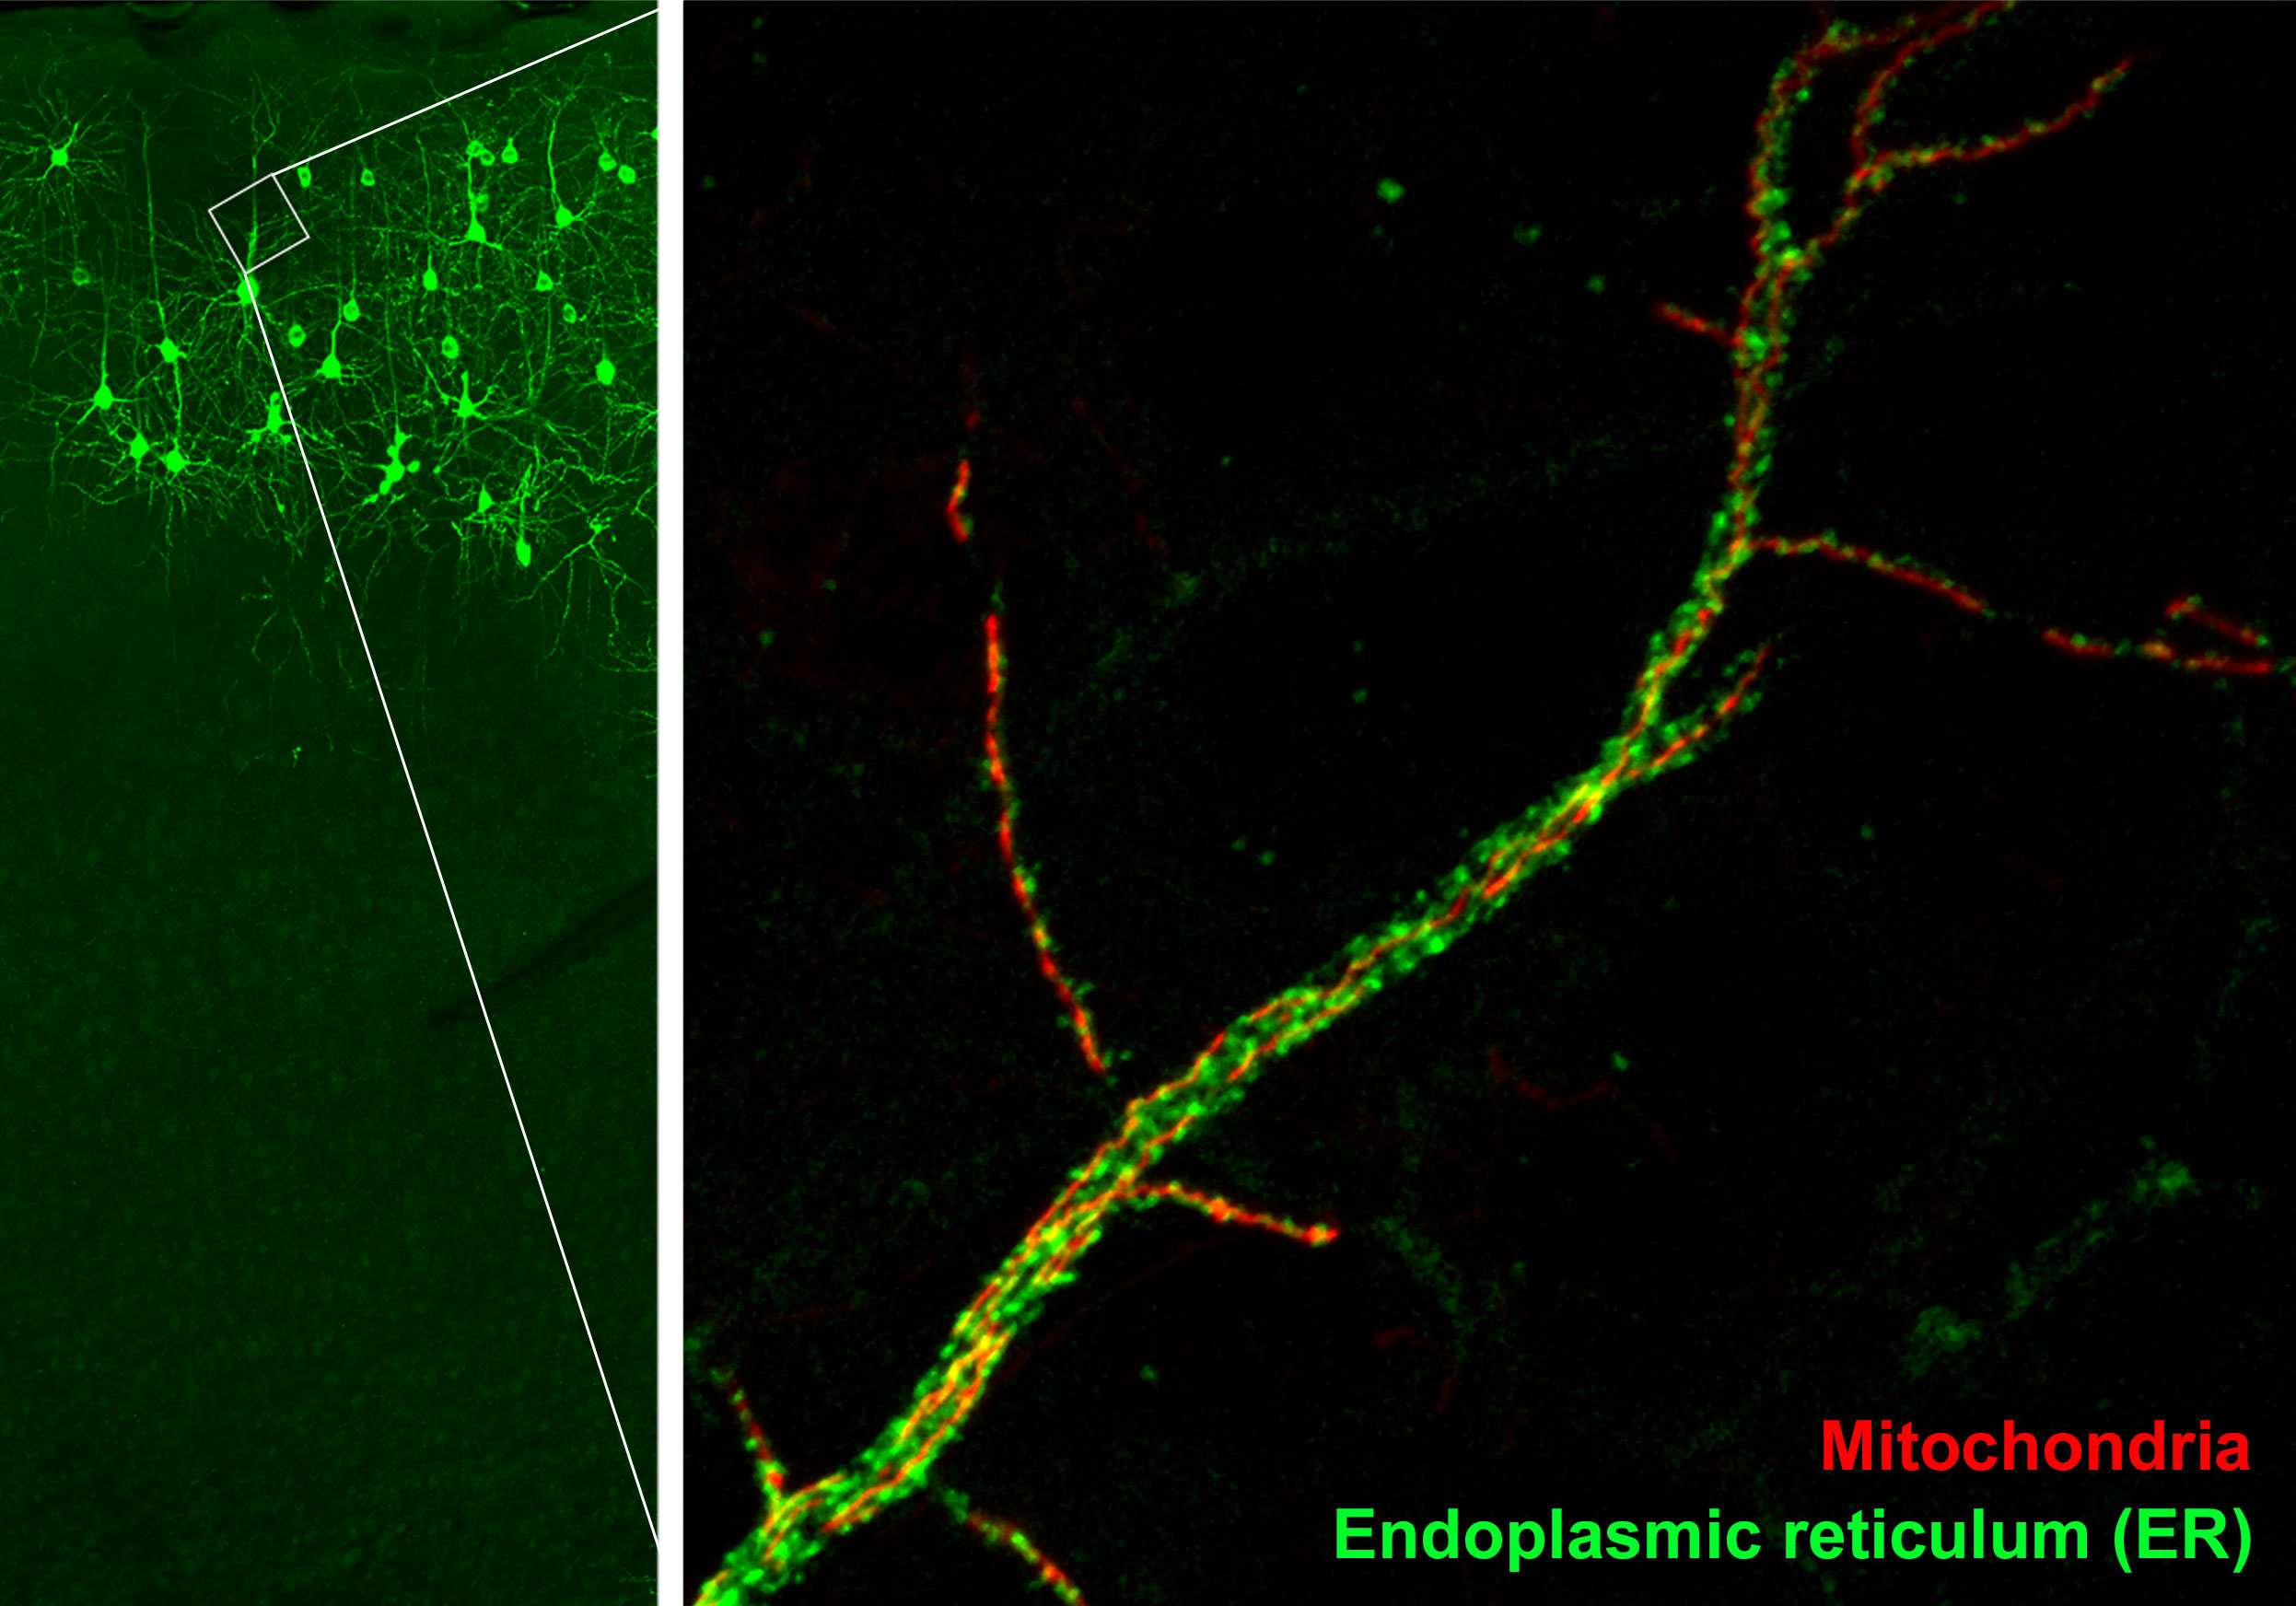 Zoomed-in image of mitochondria (red) and endoplasmic reticulum (green) in the dendrite of a neuron (Credit: Yusuke Hirabayashi/Polleux Lab/Columbia's Zuckerman Institute).